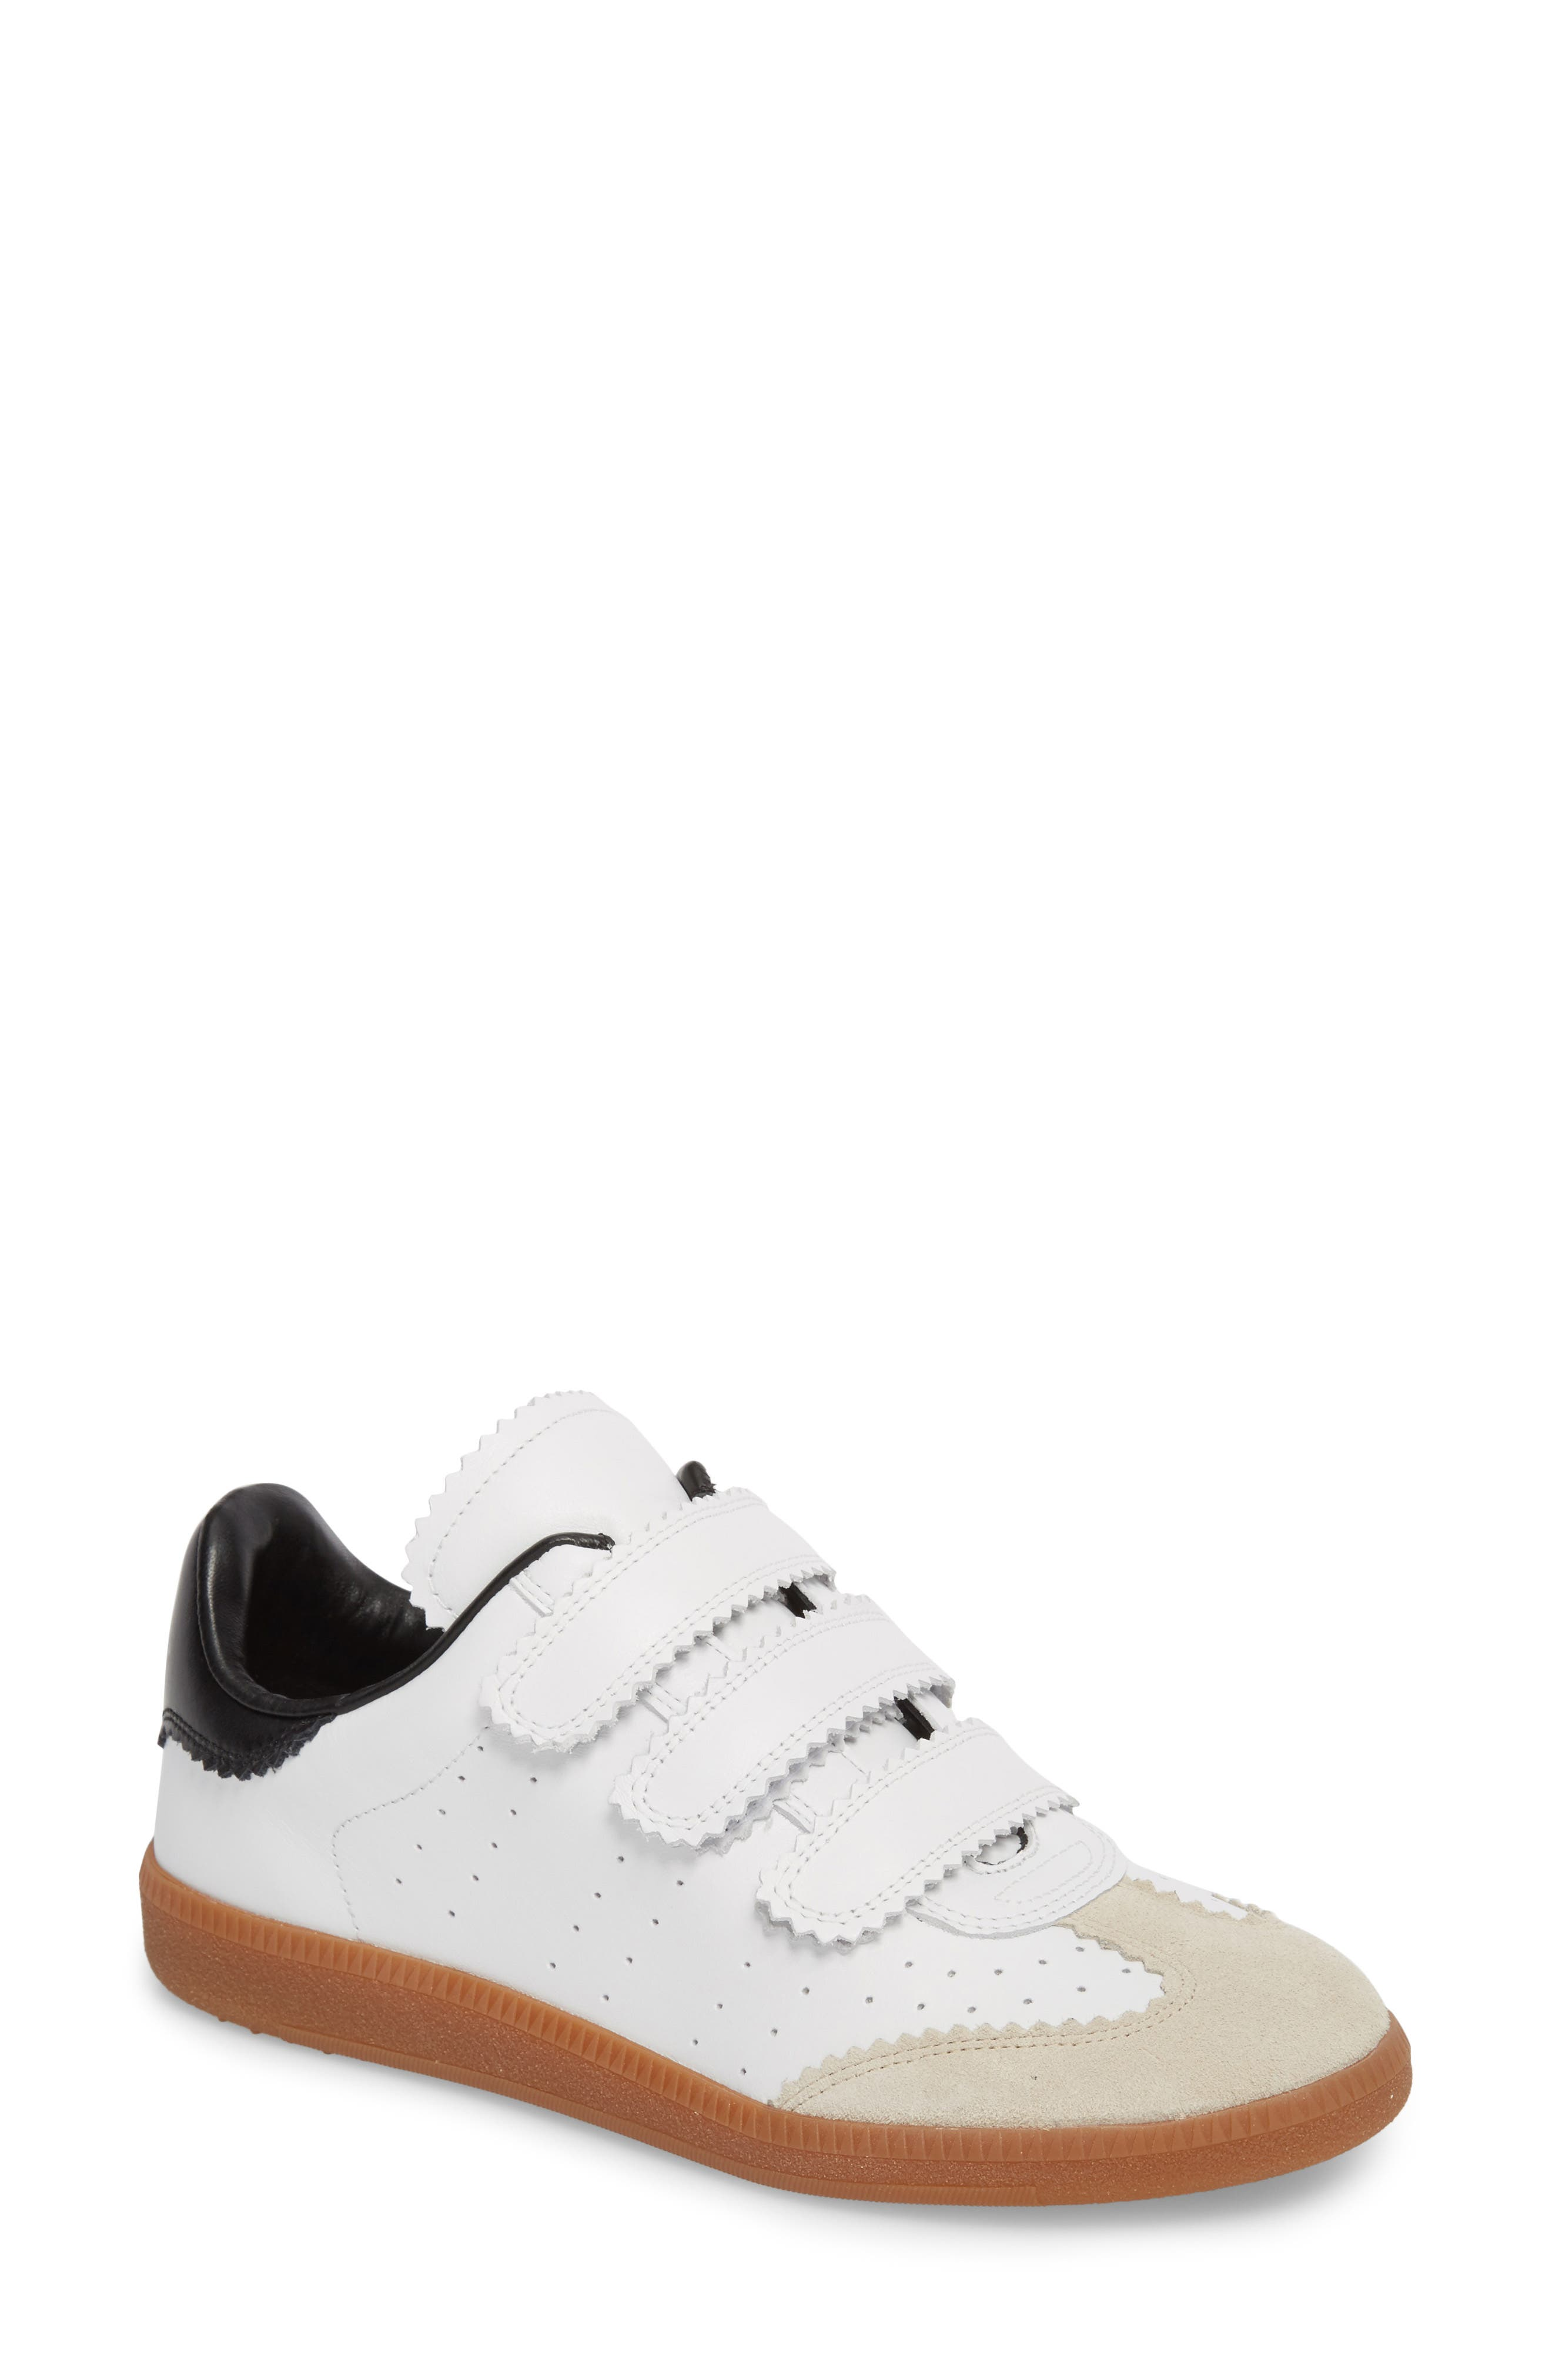 Isabel Marant Beth Low Top Sneaker,                         Main,                         color, WHITE